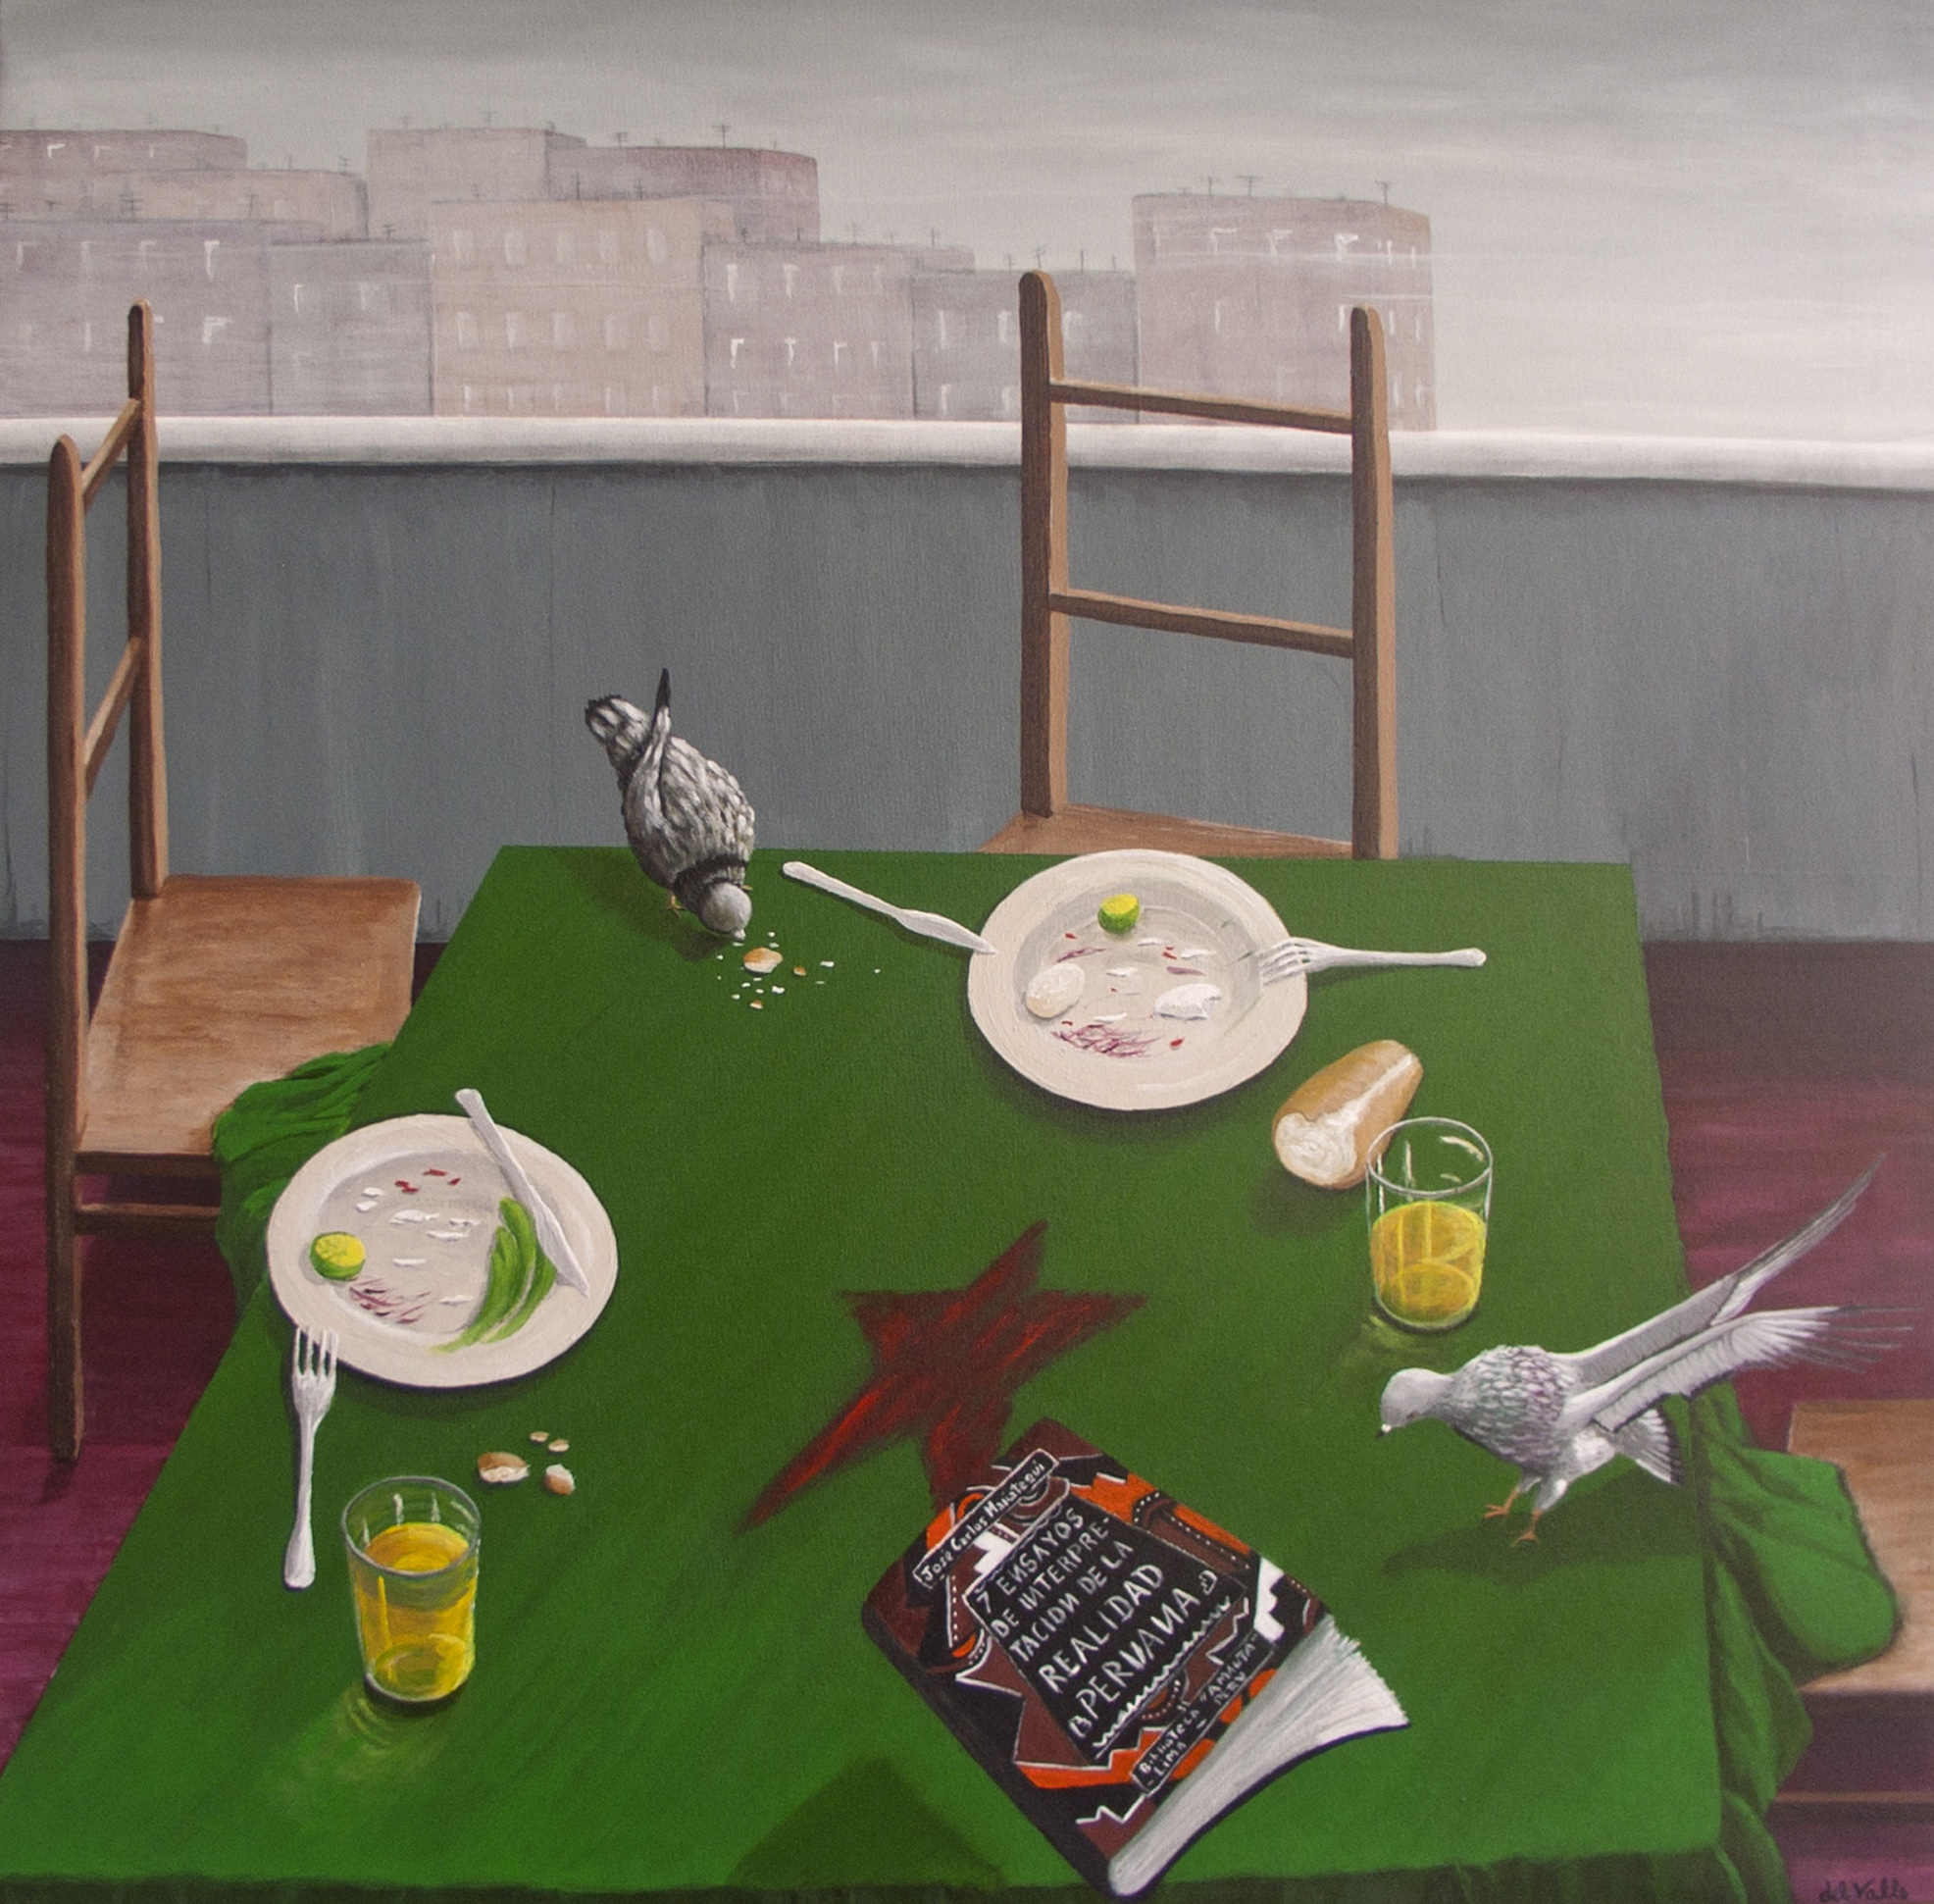 work of visual artist Guillermo del Valle